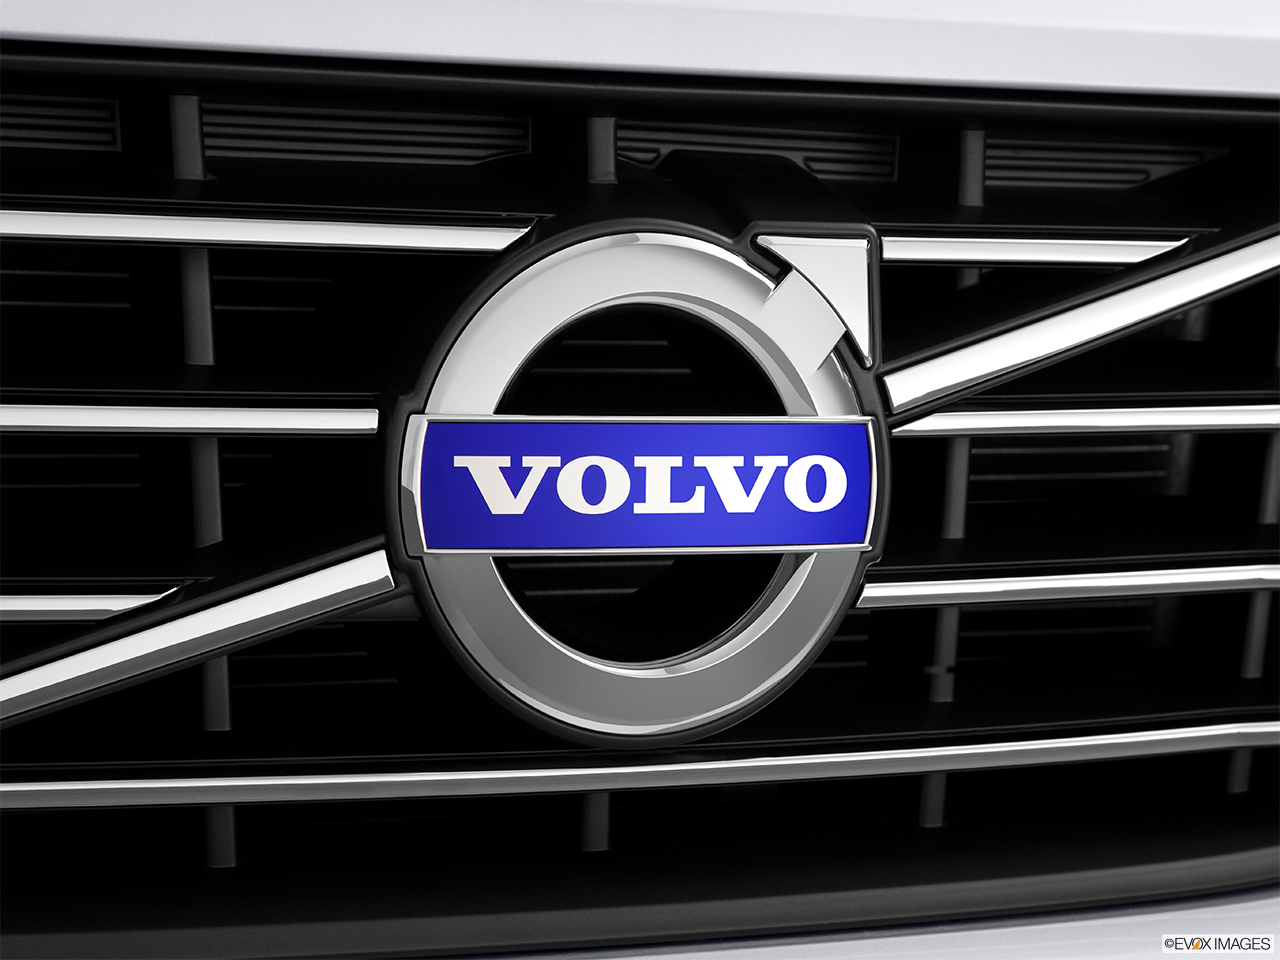 2014 Volvo XC60 T6 AWD Premier Plus Rear manufacture badge/emblem